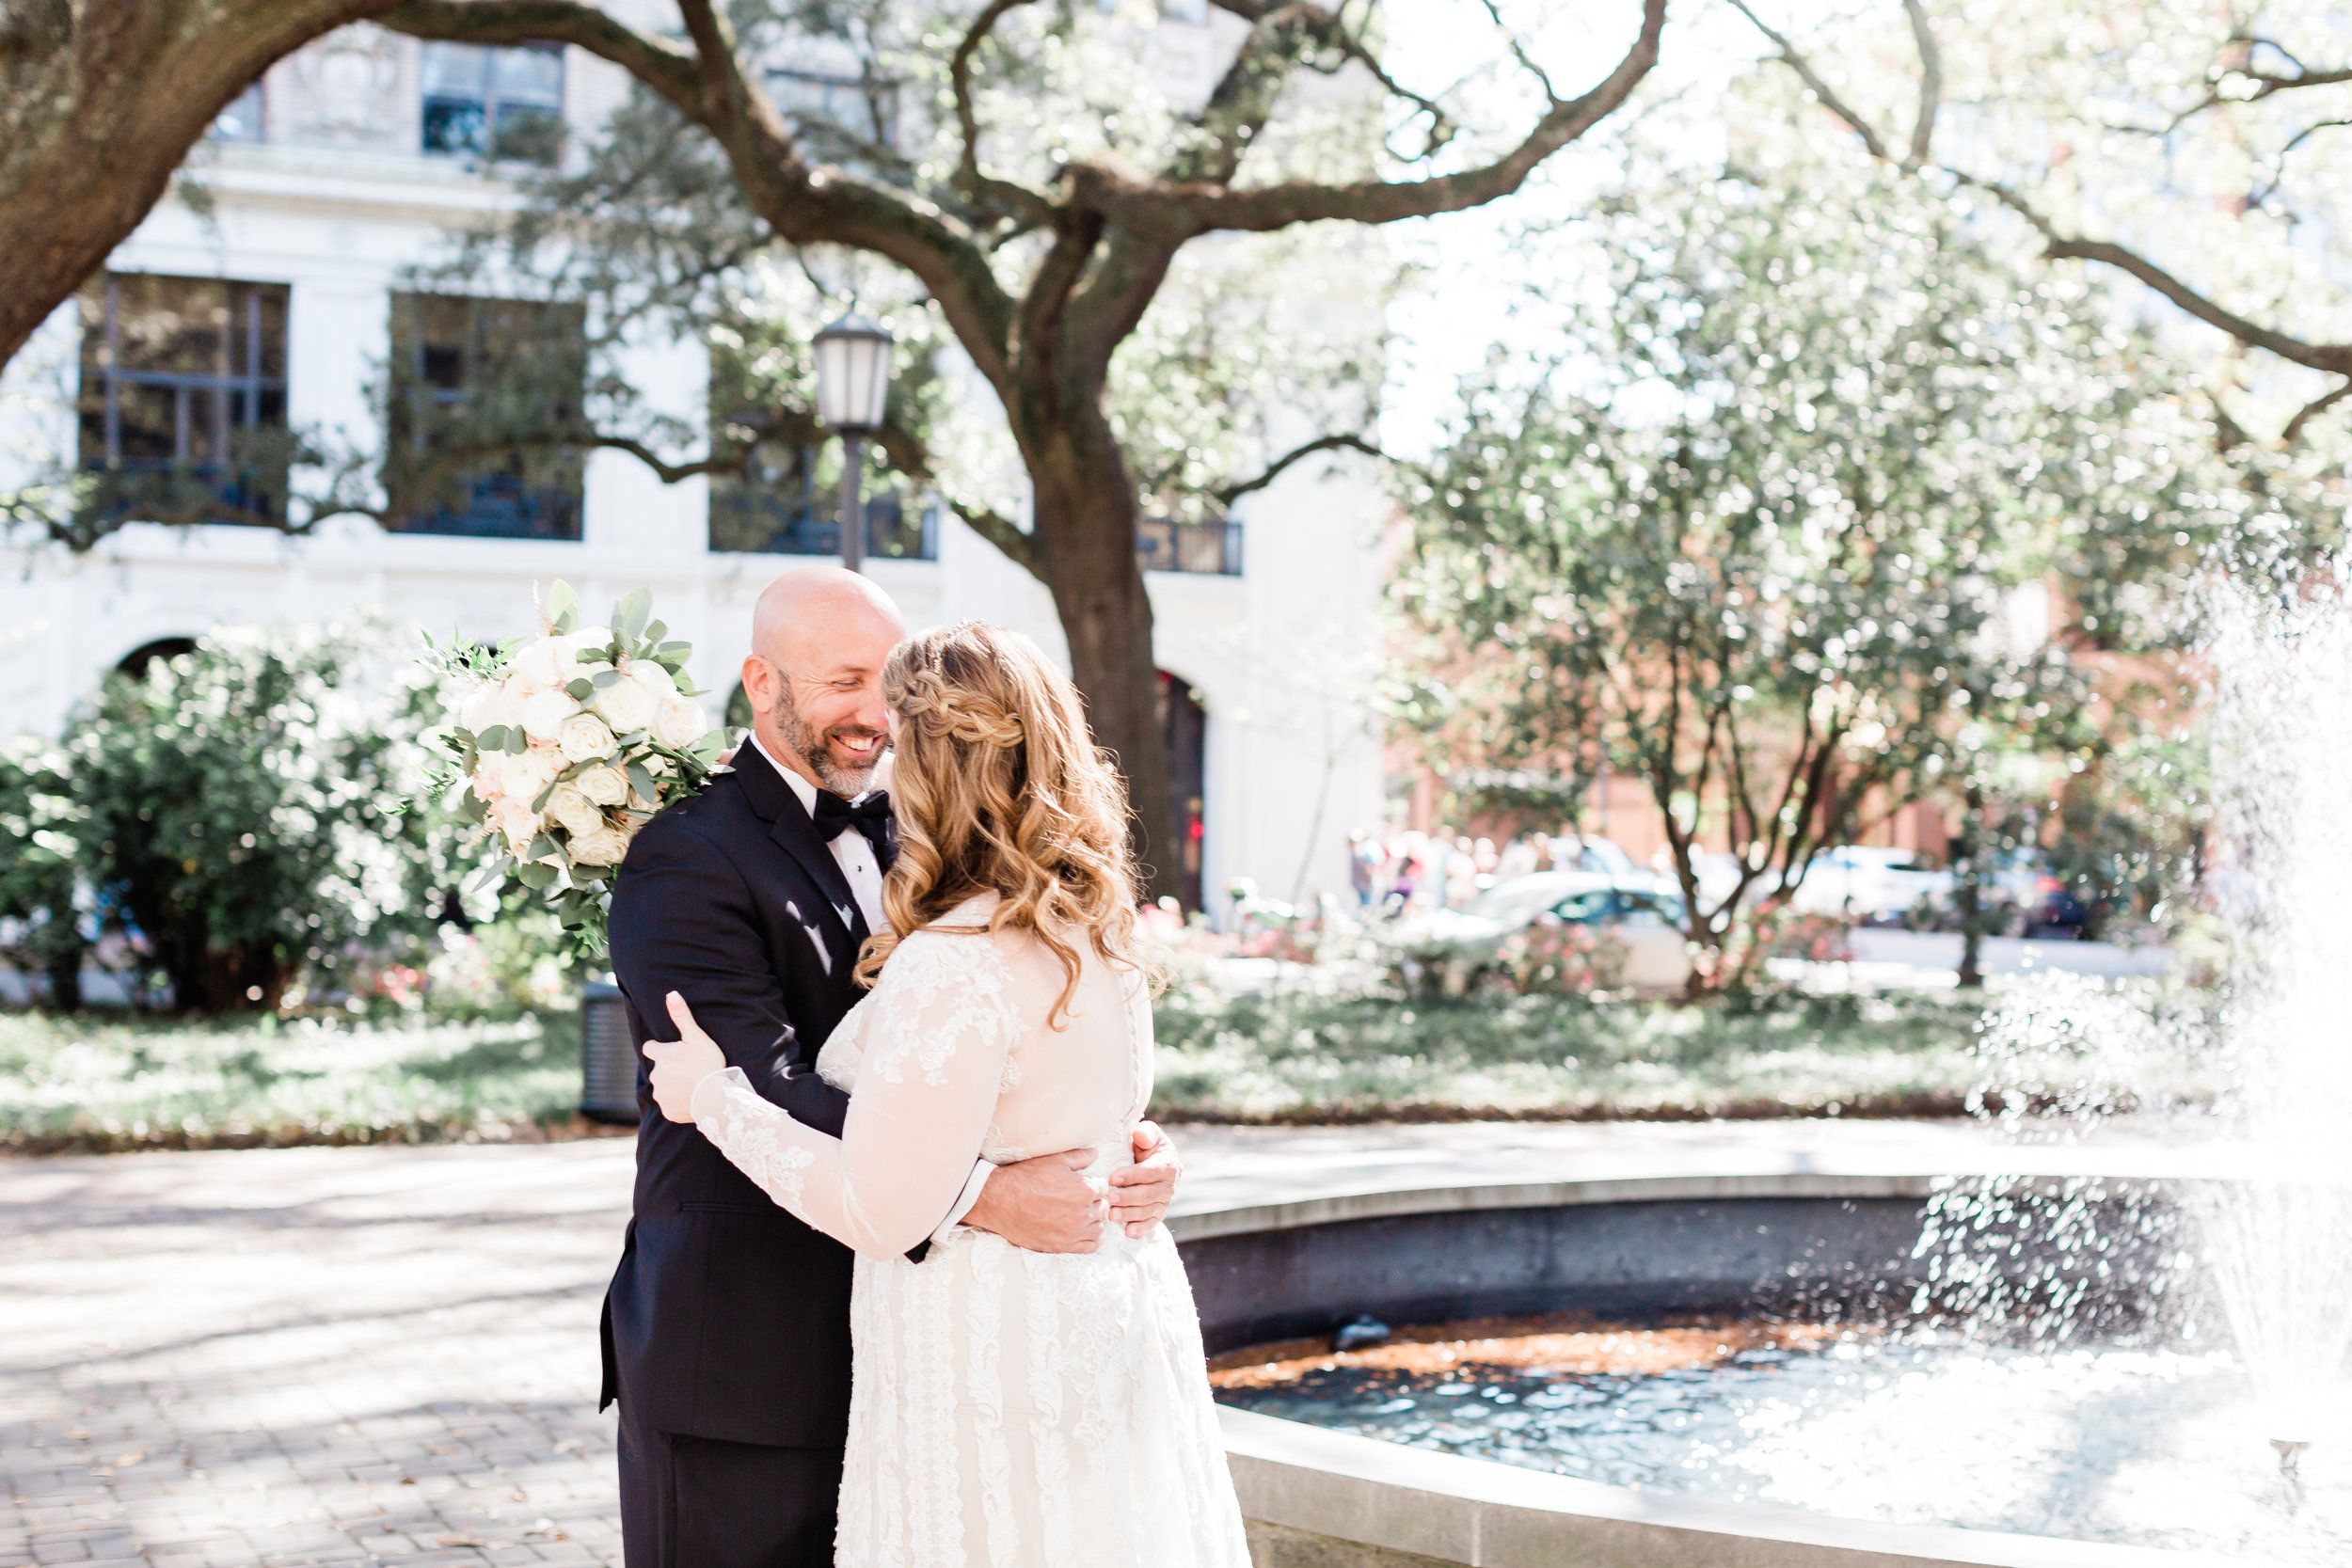 20190323-Georgia-andaz hotel-Dani and Sean-Southern Lens Photography-Savannah Photographer-Apt B Photography-Vics on the river12.jpg